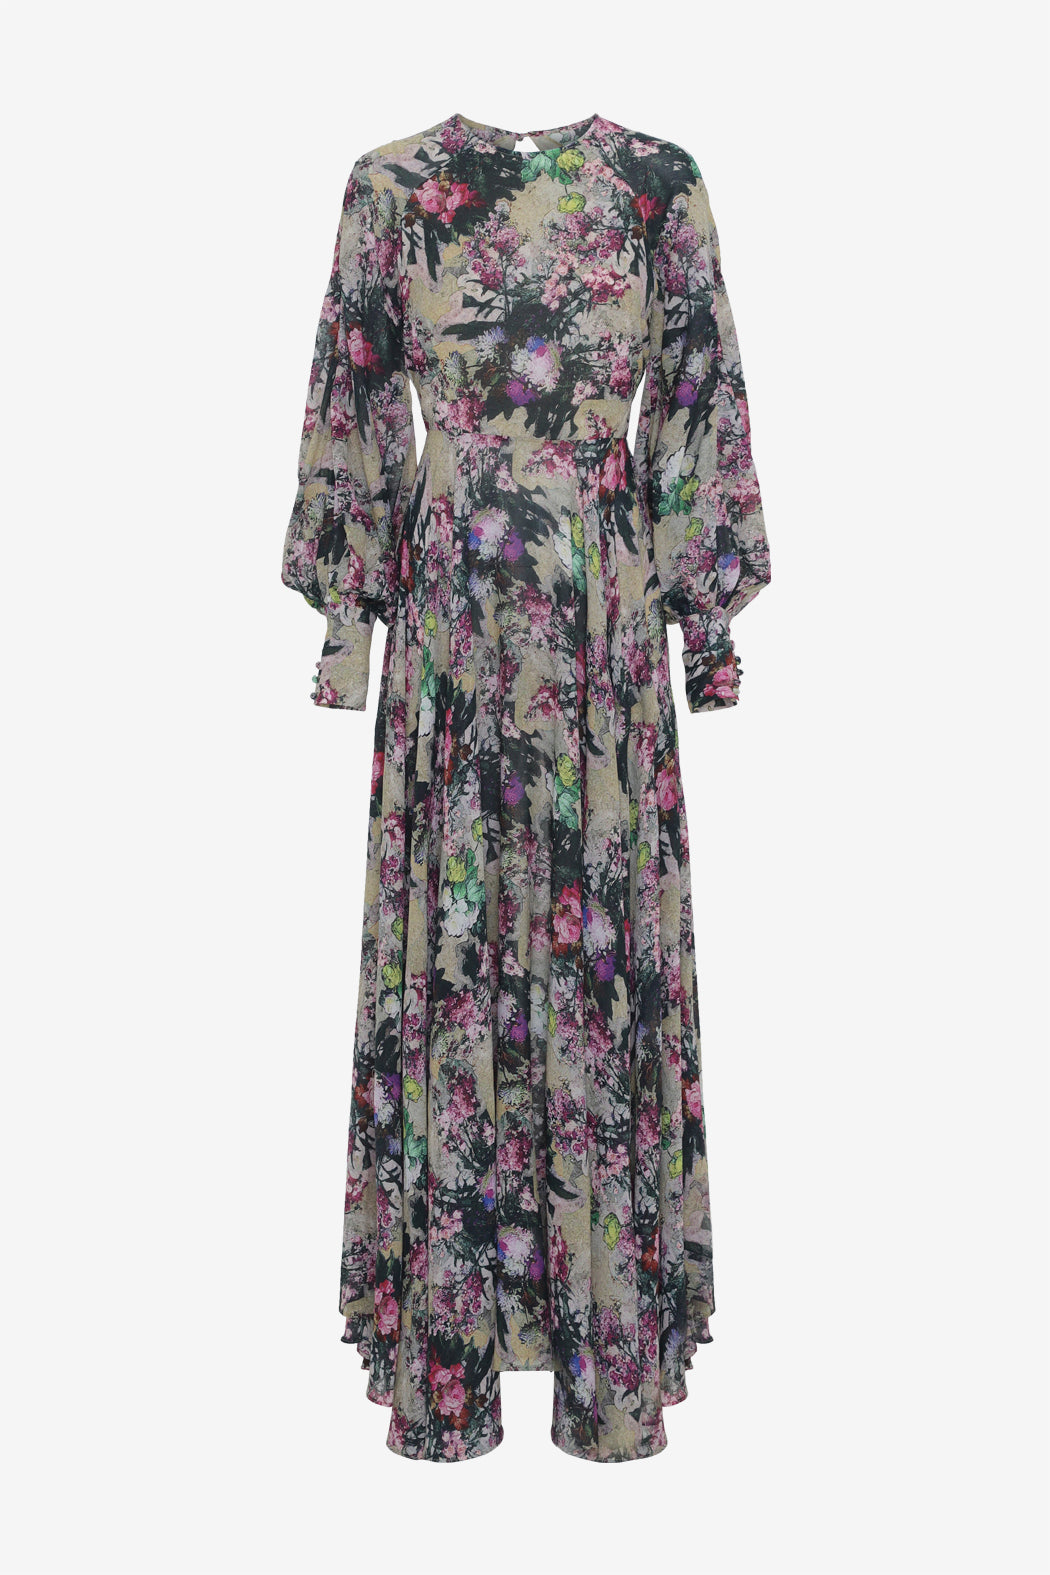 Flower printed dress with cuffs puffy sleeves and a asymmetrical skirt